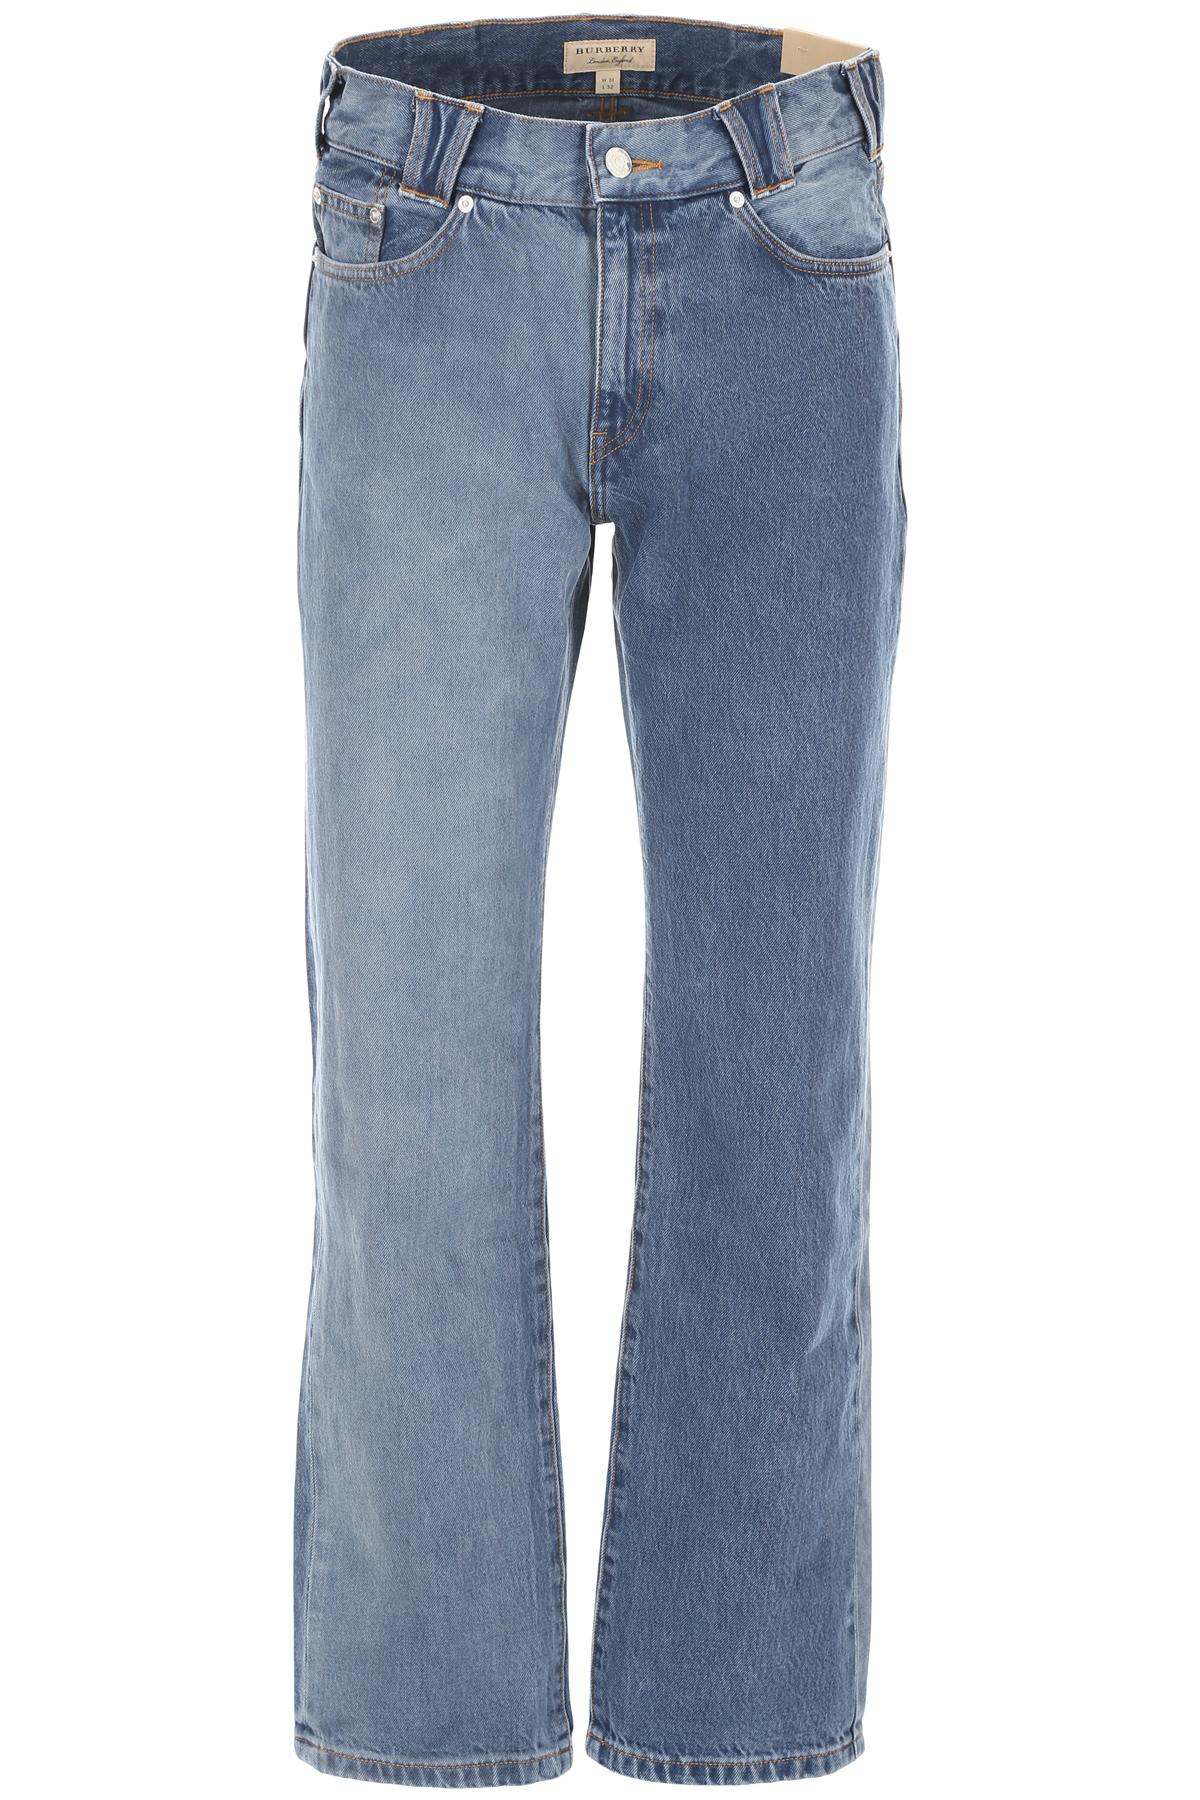 5c686a5b7bef Burberry - Blue Bicolor Jeans for Men - Lyst. View fullscreen